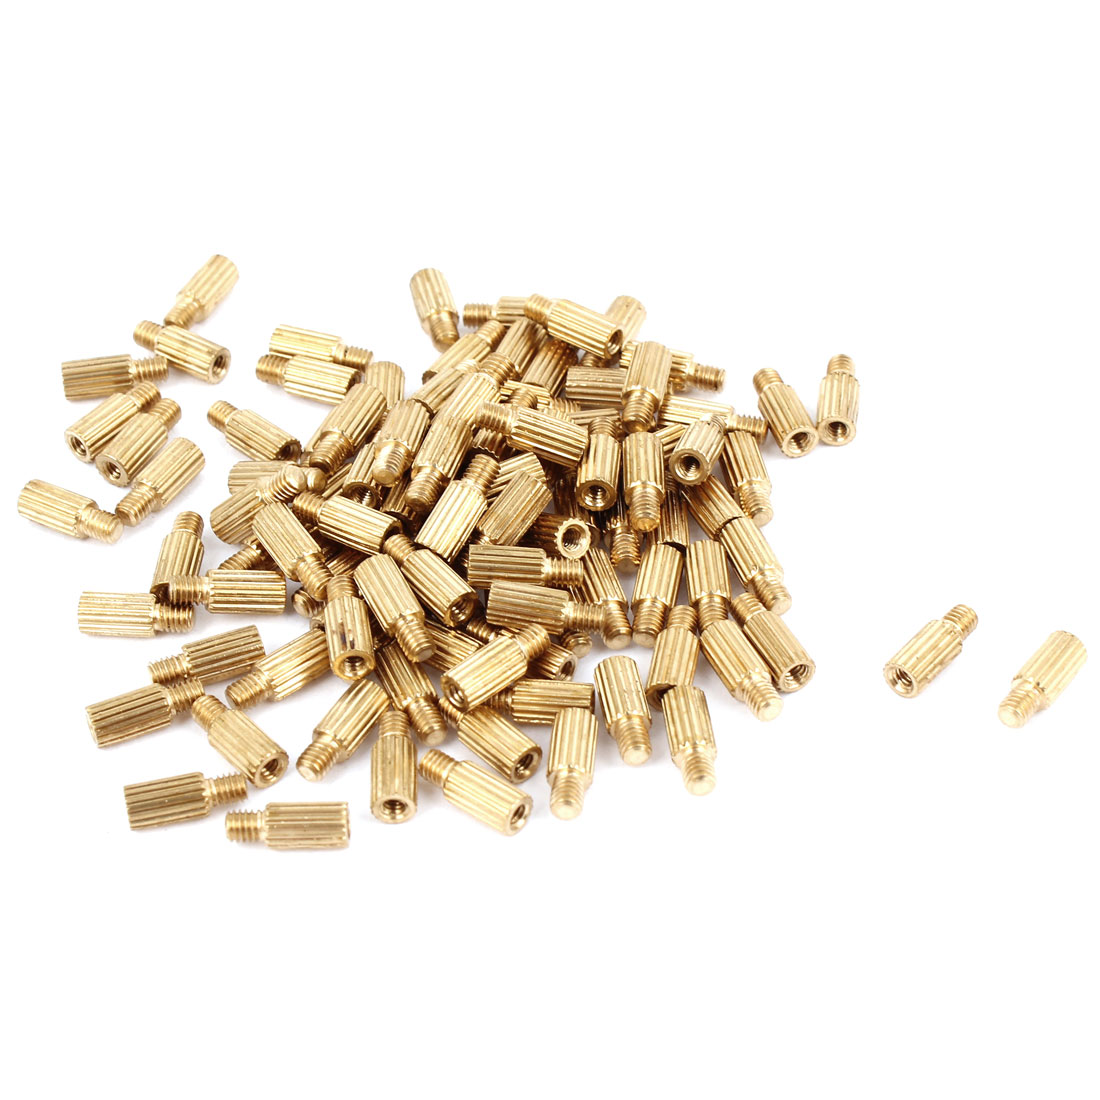 100Pcs M2 Male to M2 Female Thread Grooved Brass Pillars Standoff